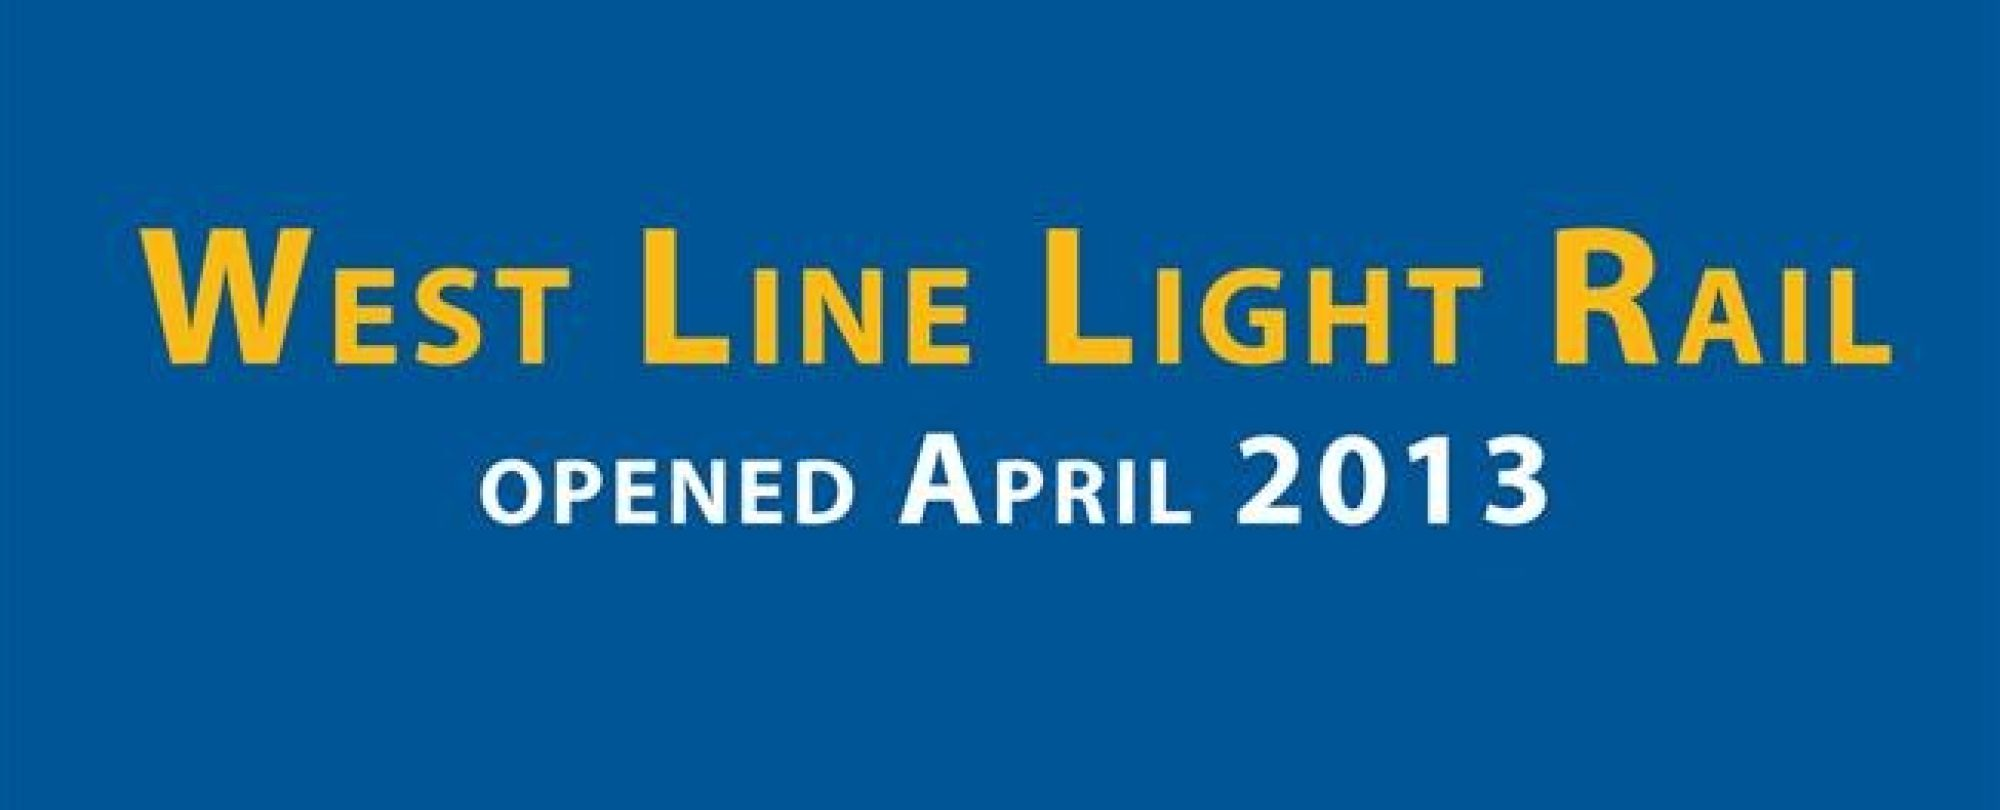 West Line light rail opened April 2013